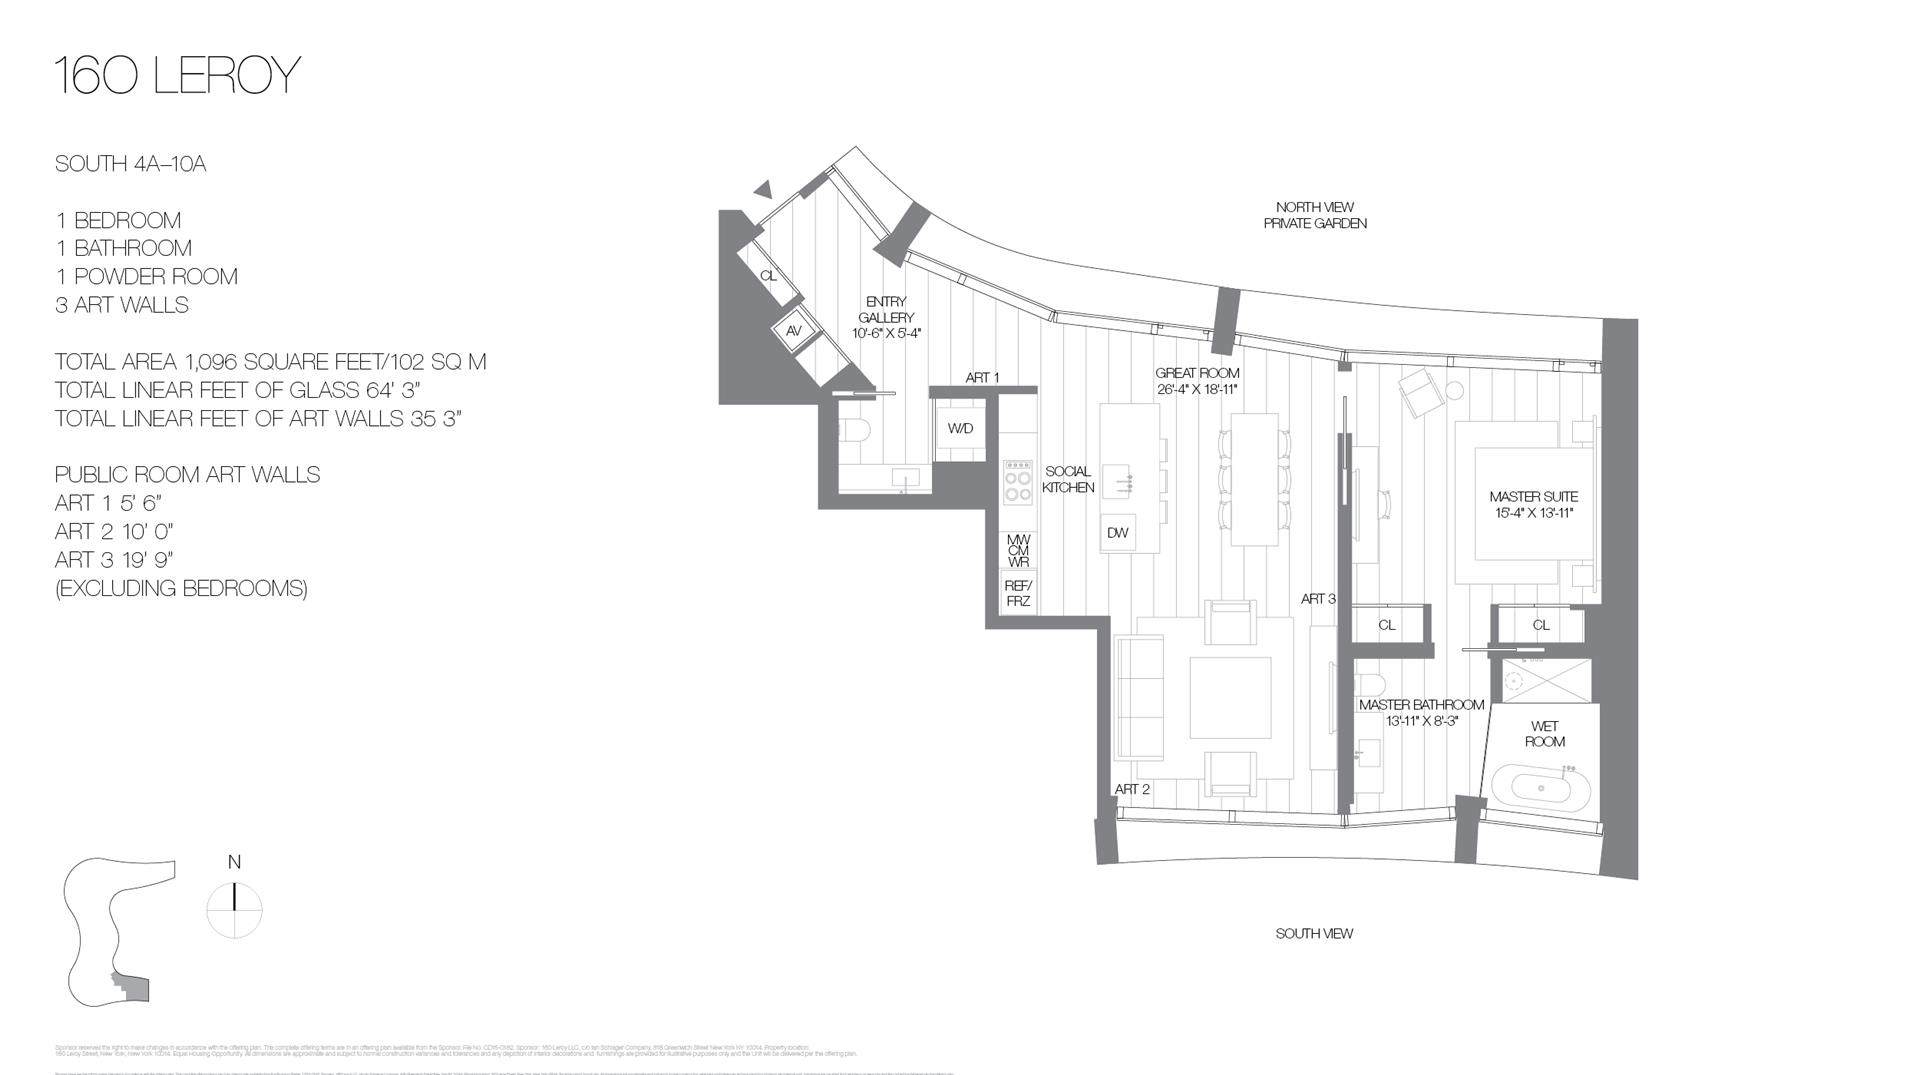 Floor plan of 160 Leroy St, SOUTH9A - West Village - Meatpacking District, New York